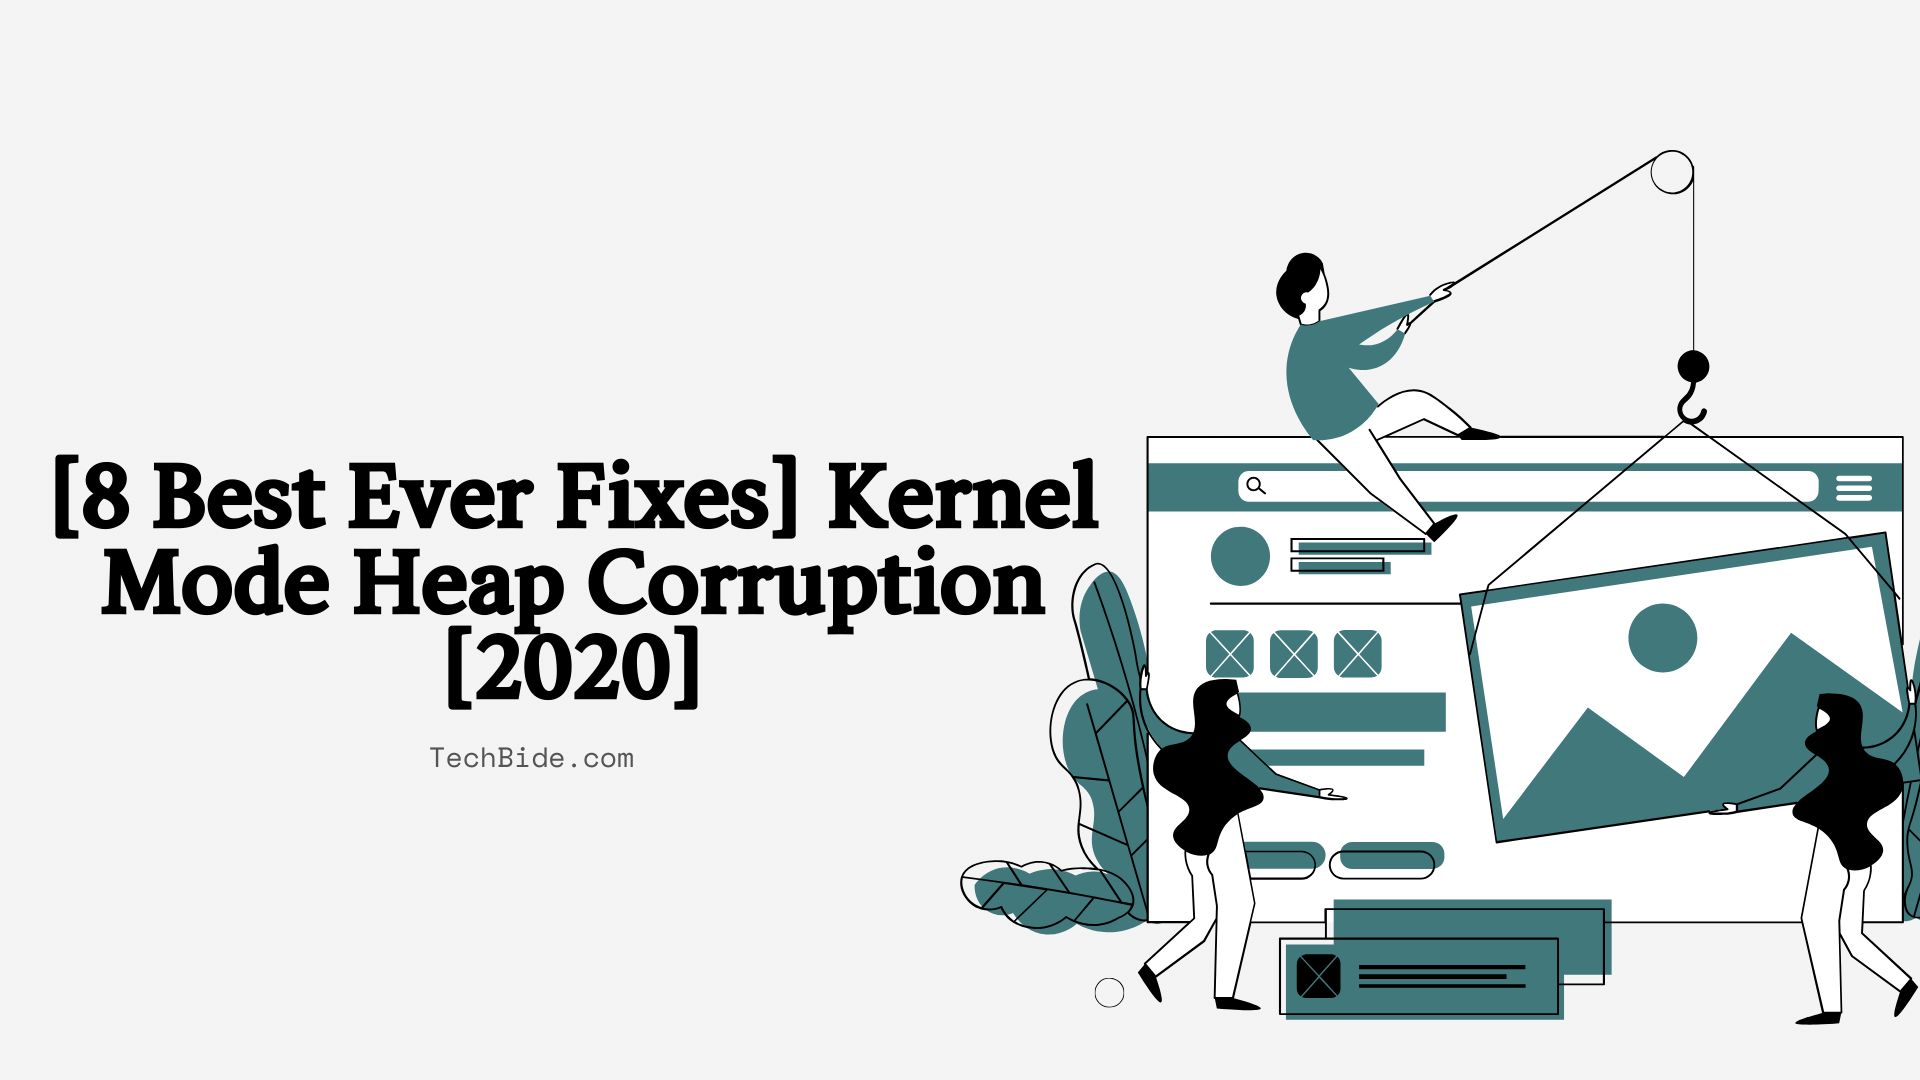 [8 Best Ever Fixes] Kernel Mode Heap Corruption [2020]